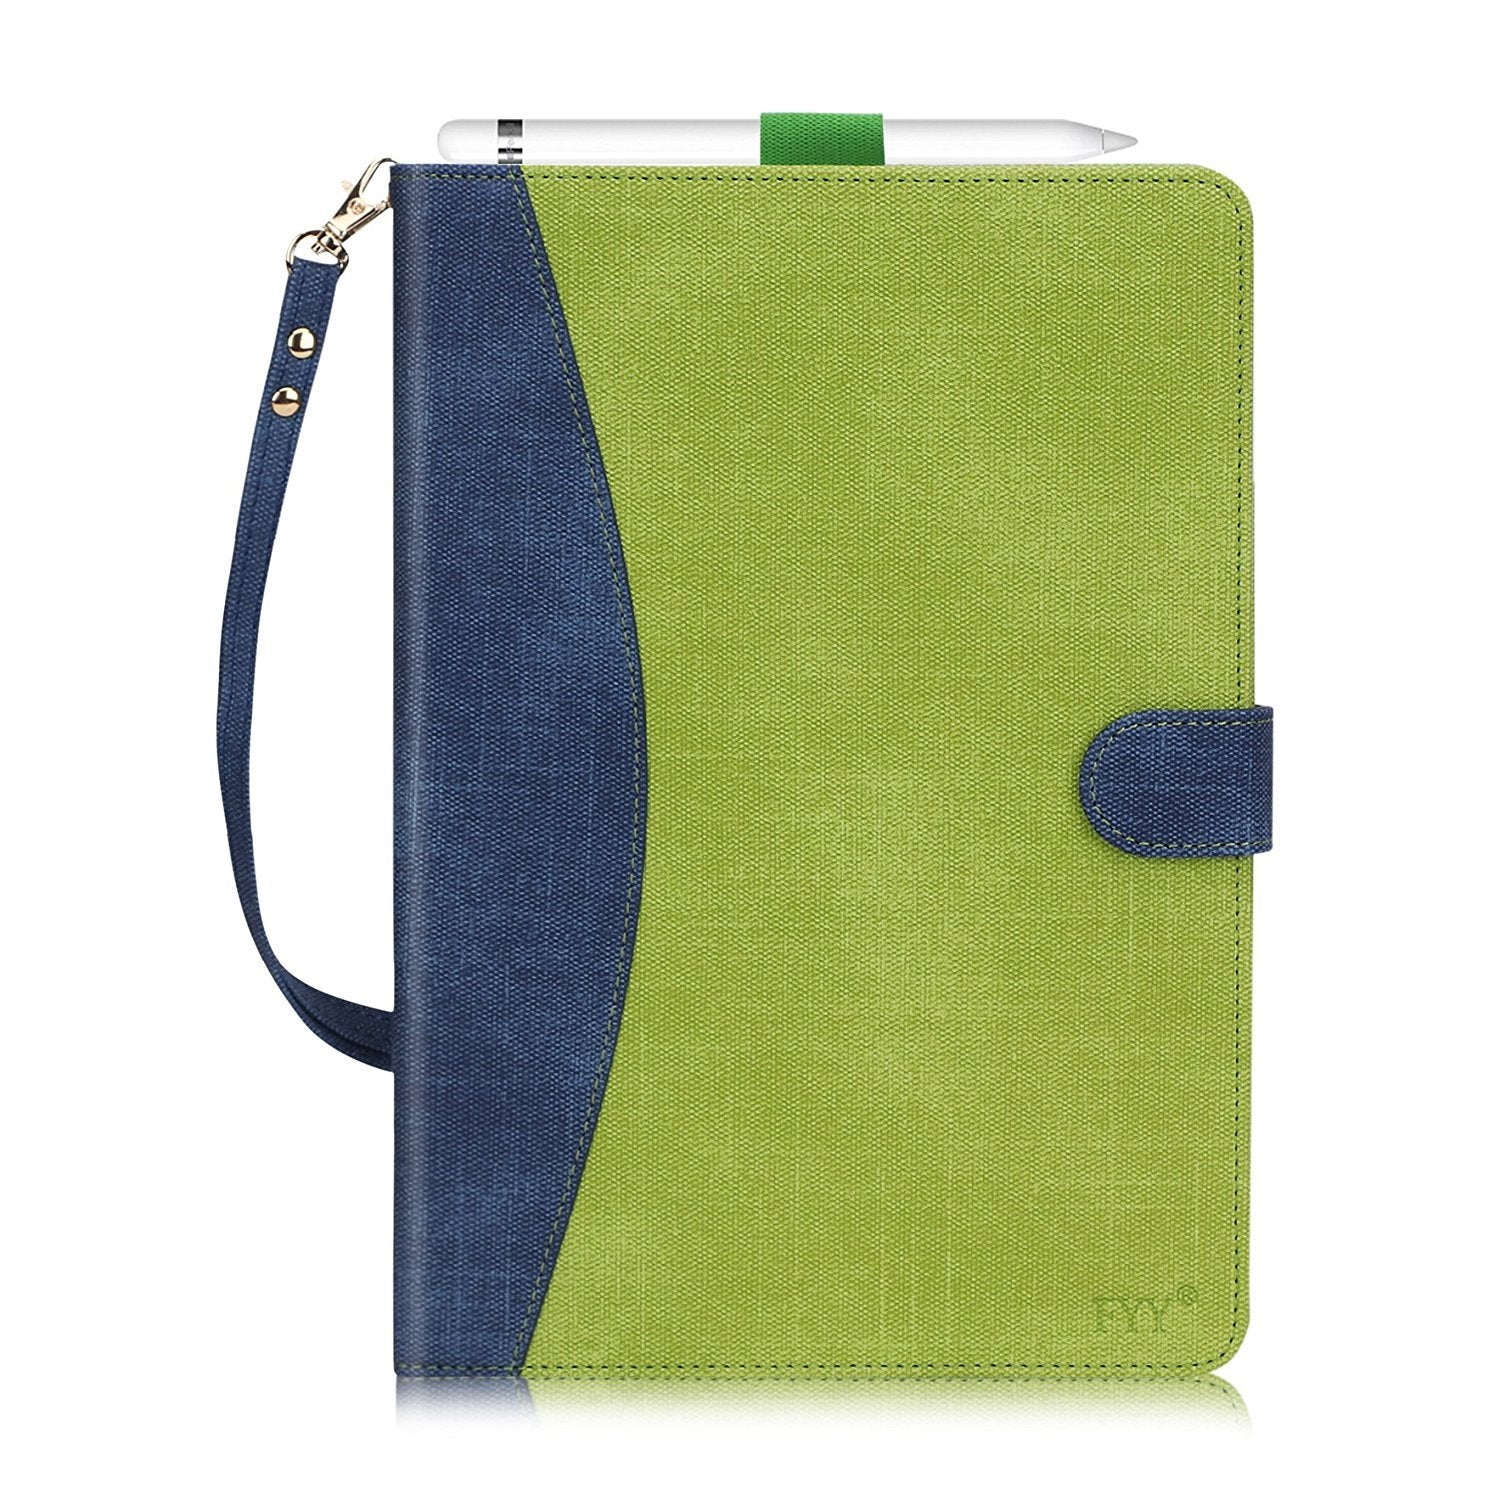 Canvas Case for 2019 iPad Air 10.5/2017 iPad Pro 10.5